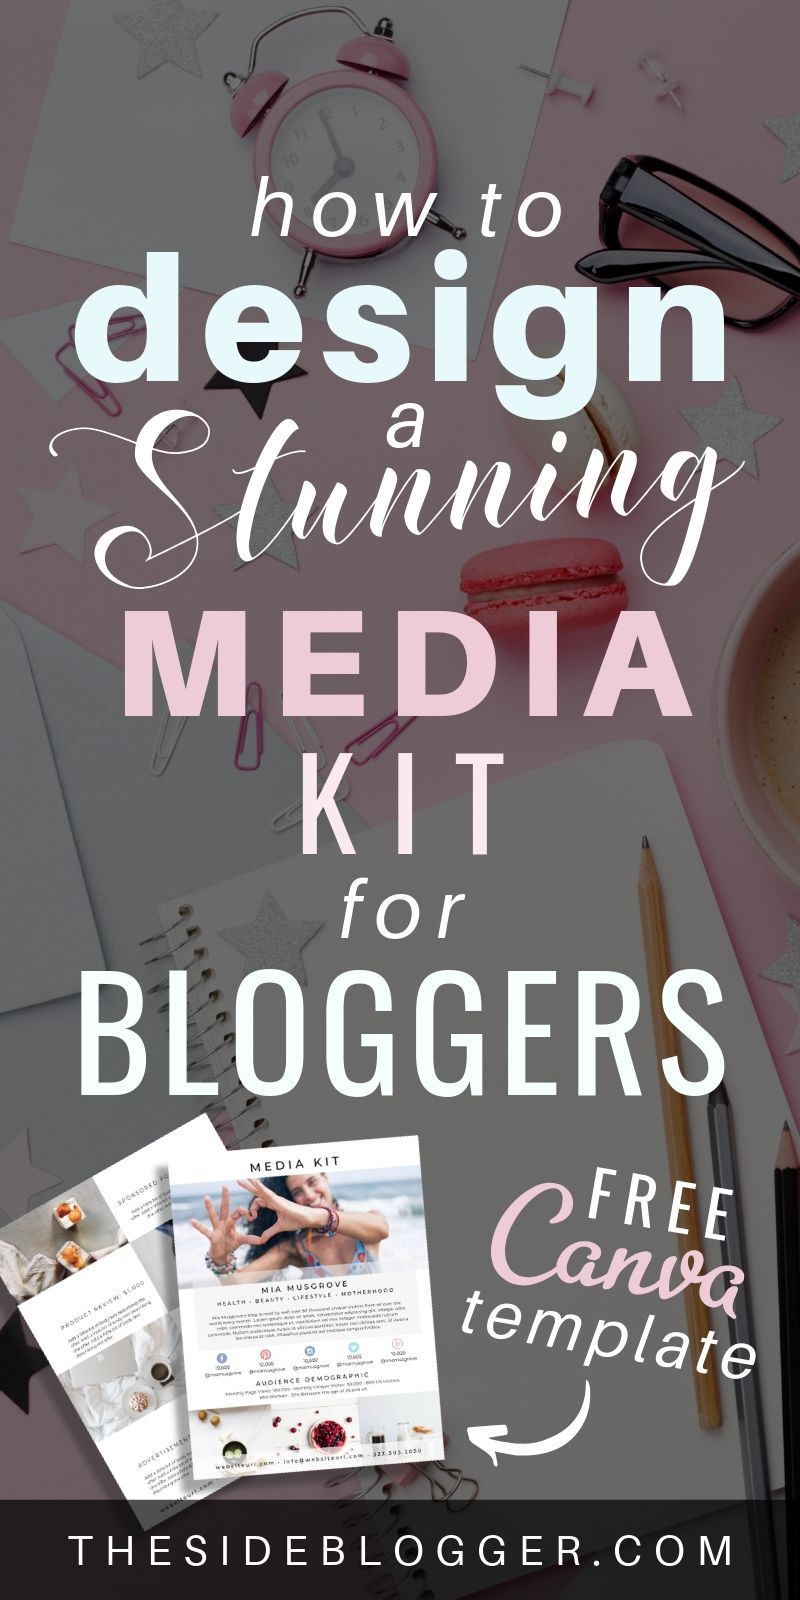 Why and how should bloggers design a media kit for their blog?